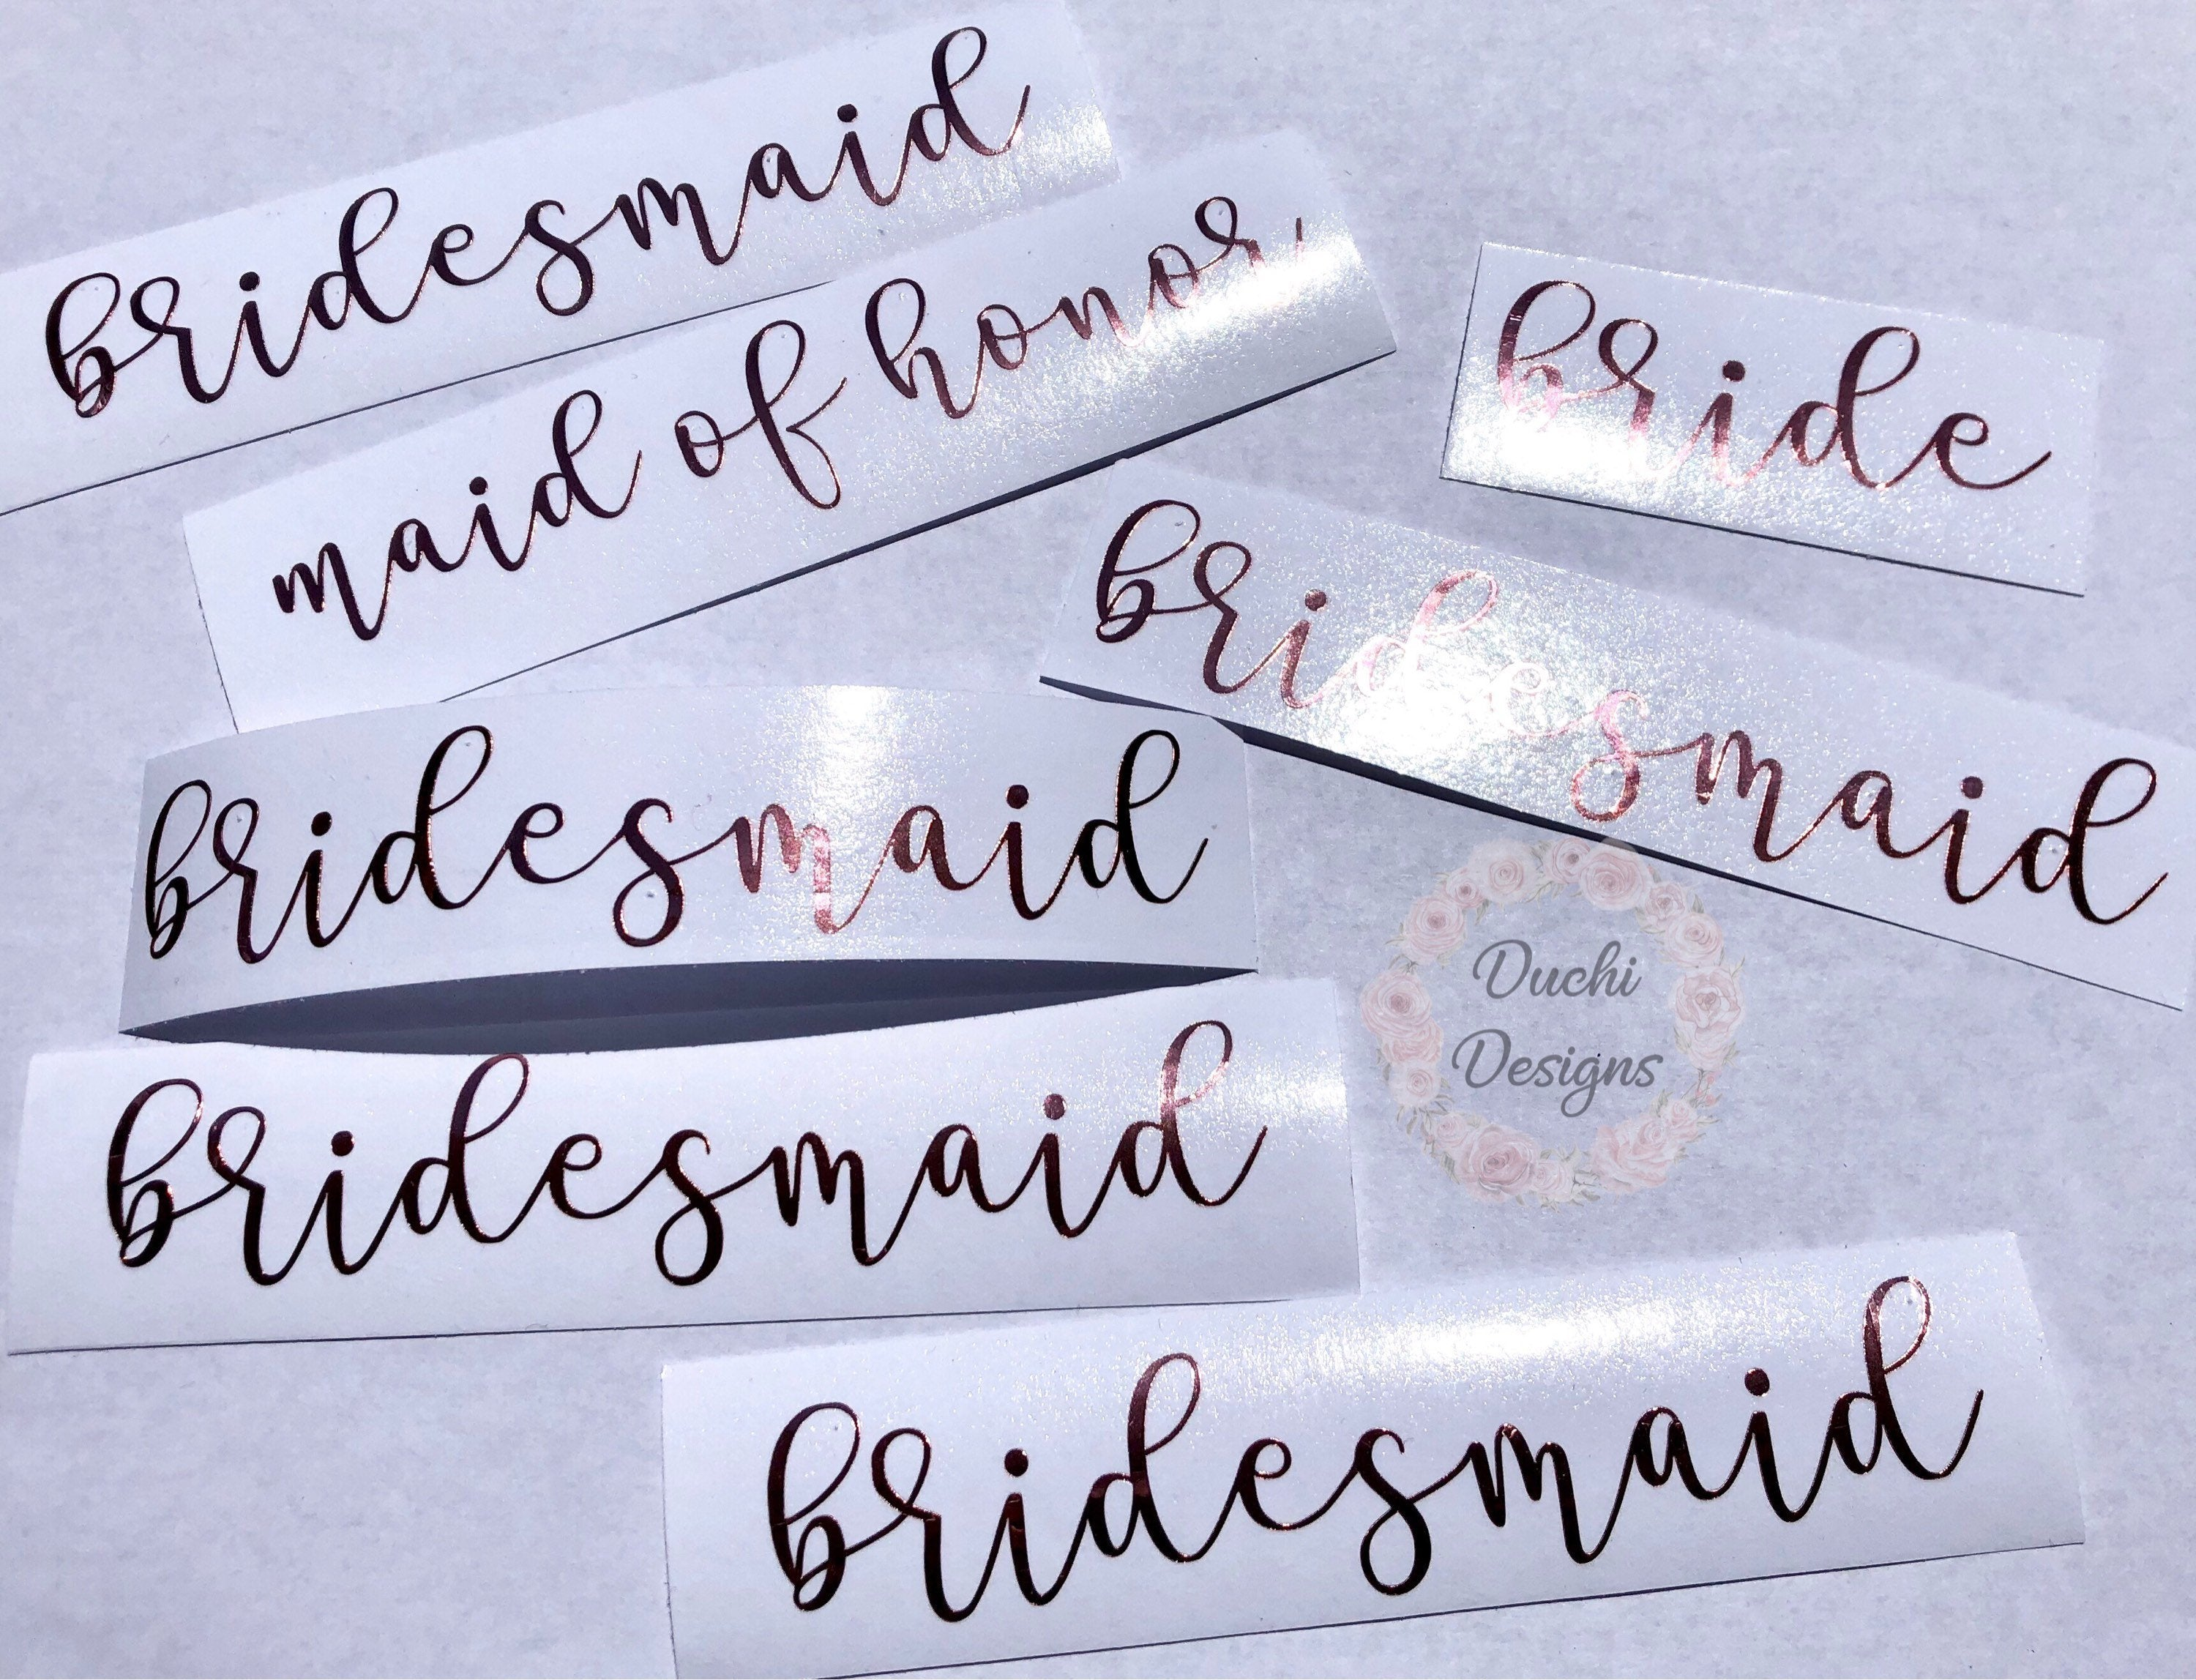 b2619a80e59 Bridesmaid Champagne Glass Decal, Stickers Marriage, Vinyl Decals for  Wedding Party, Custom Wedding Stickers, Bride Tribe Wine Glass Decals